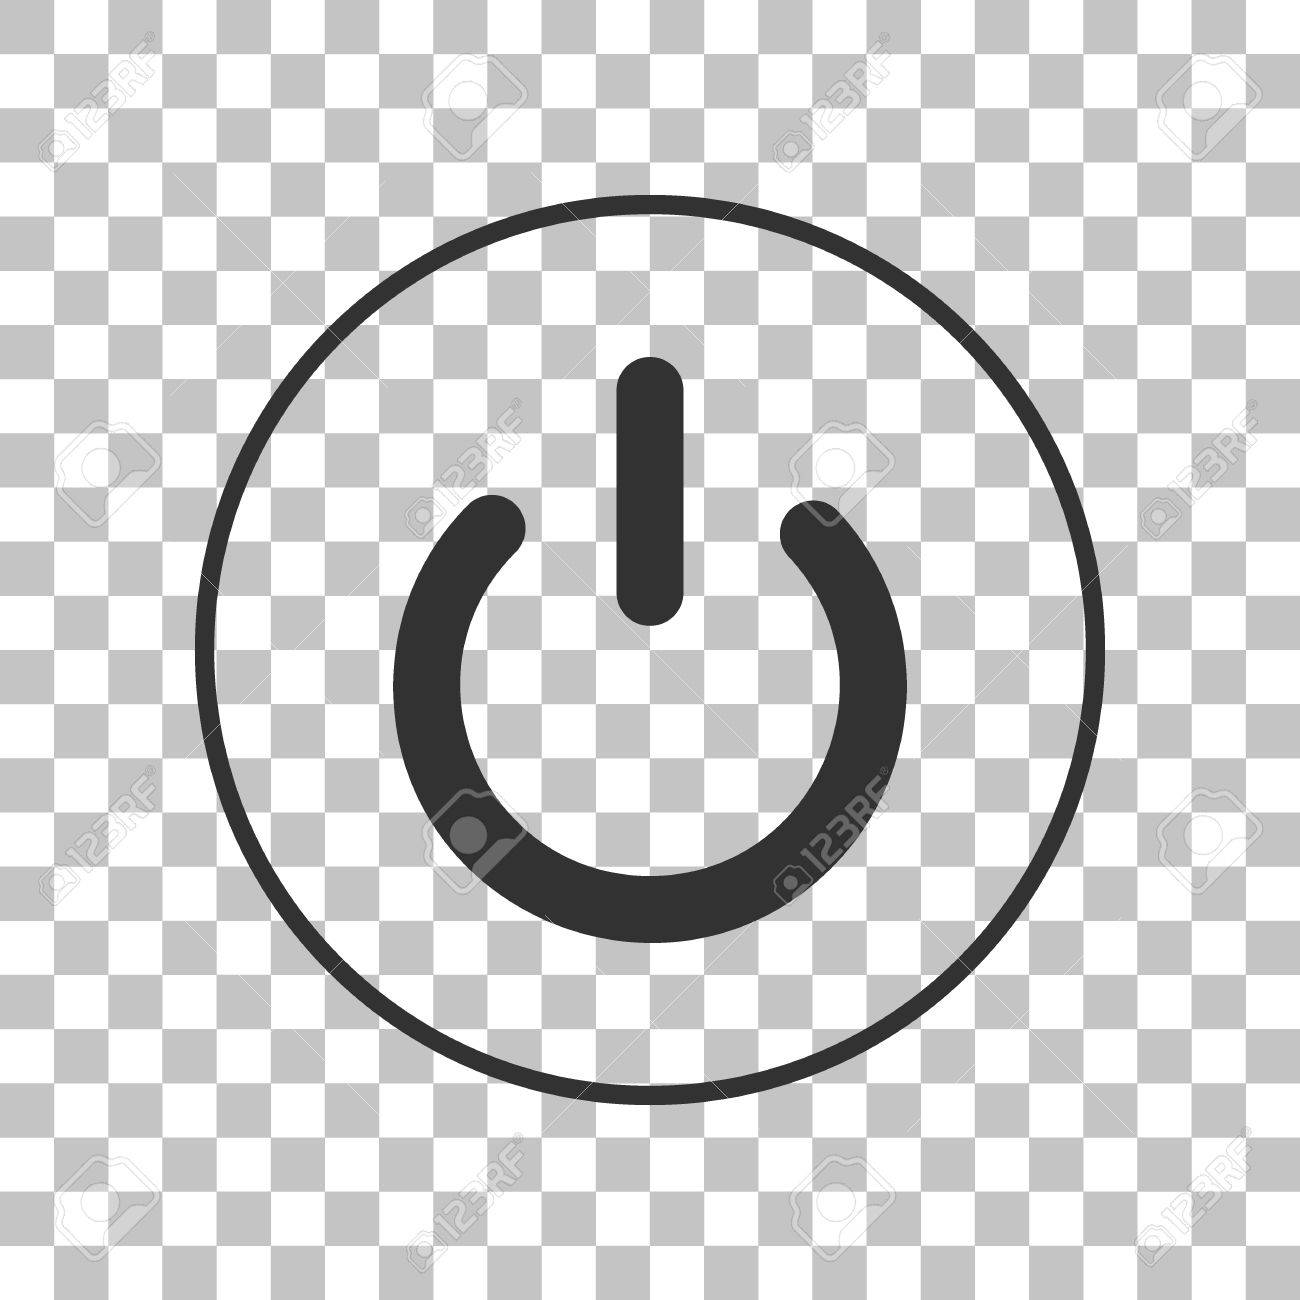 Summary -> What Is A Power Button And What Are The Onoff Symbols